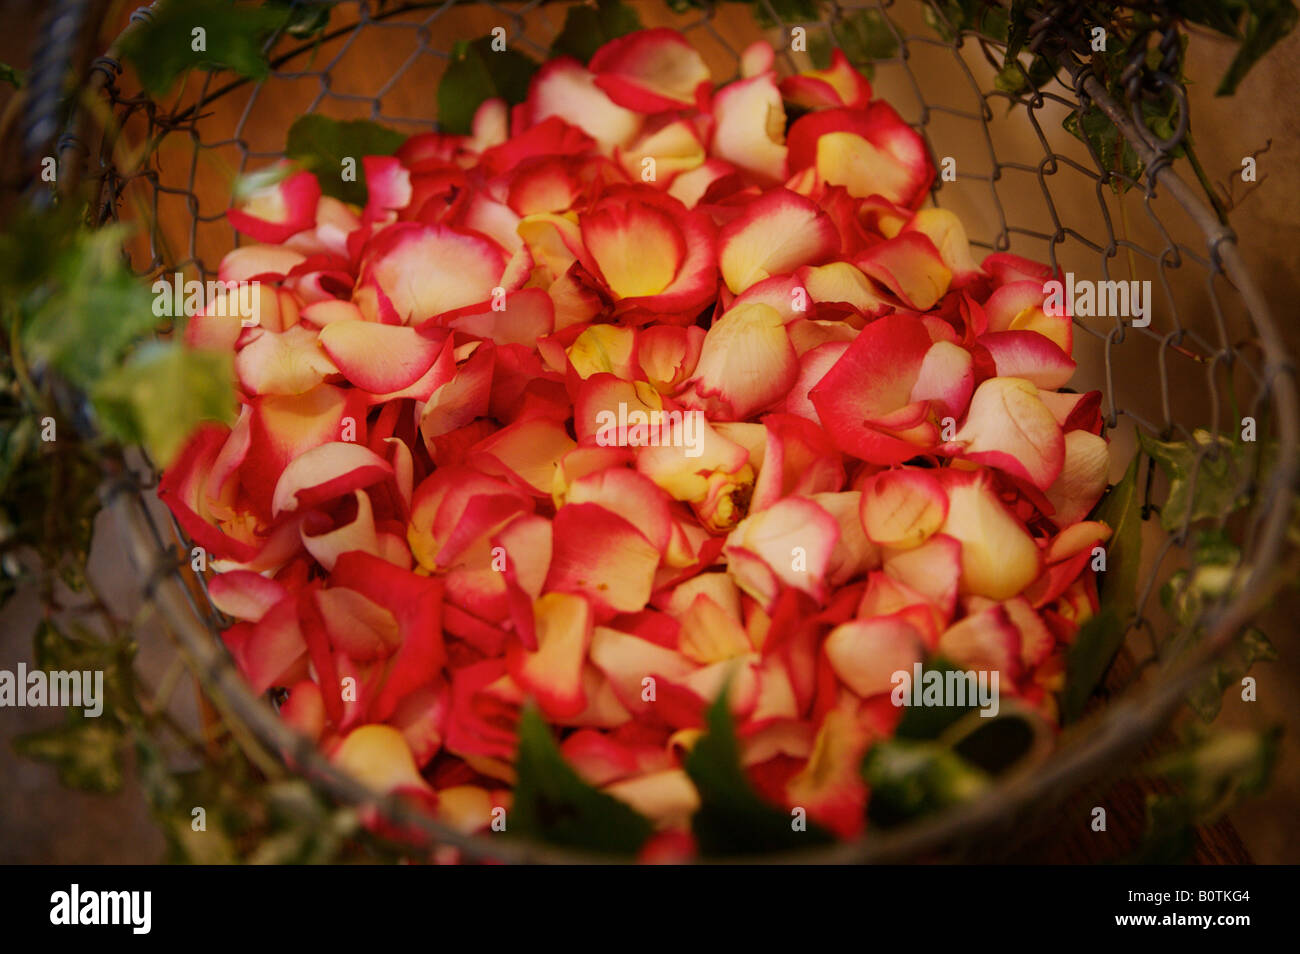 Basket of petals to be thrown as confetti - Stock Image